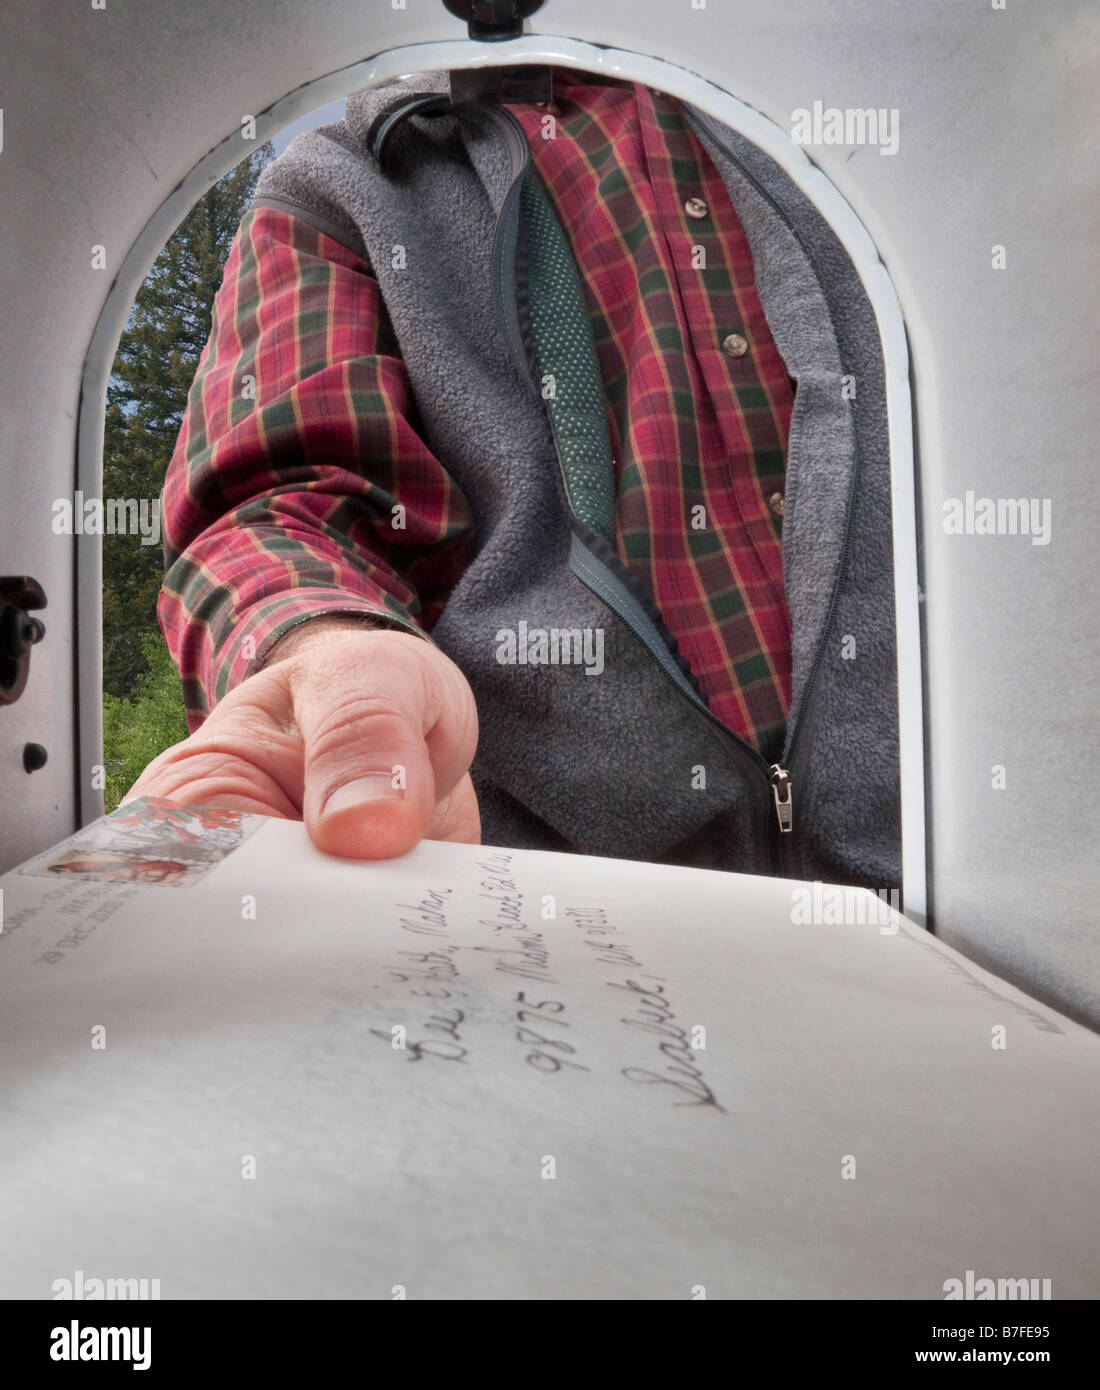 Picking up mail from the letter's perspective inside the mailbox Stock Photo